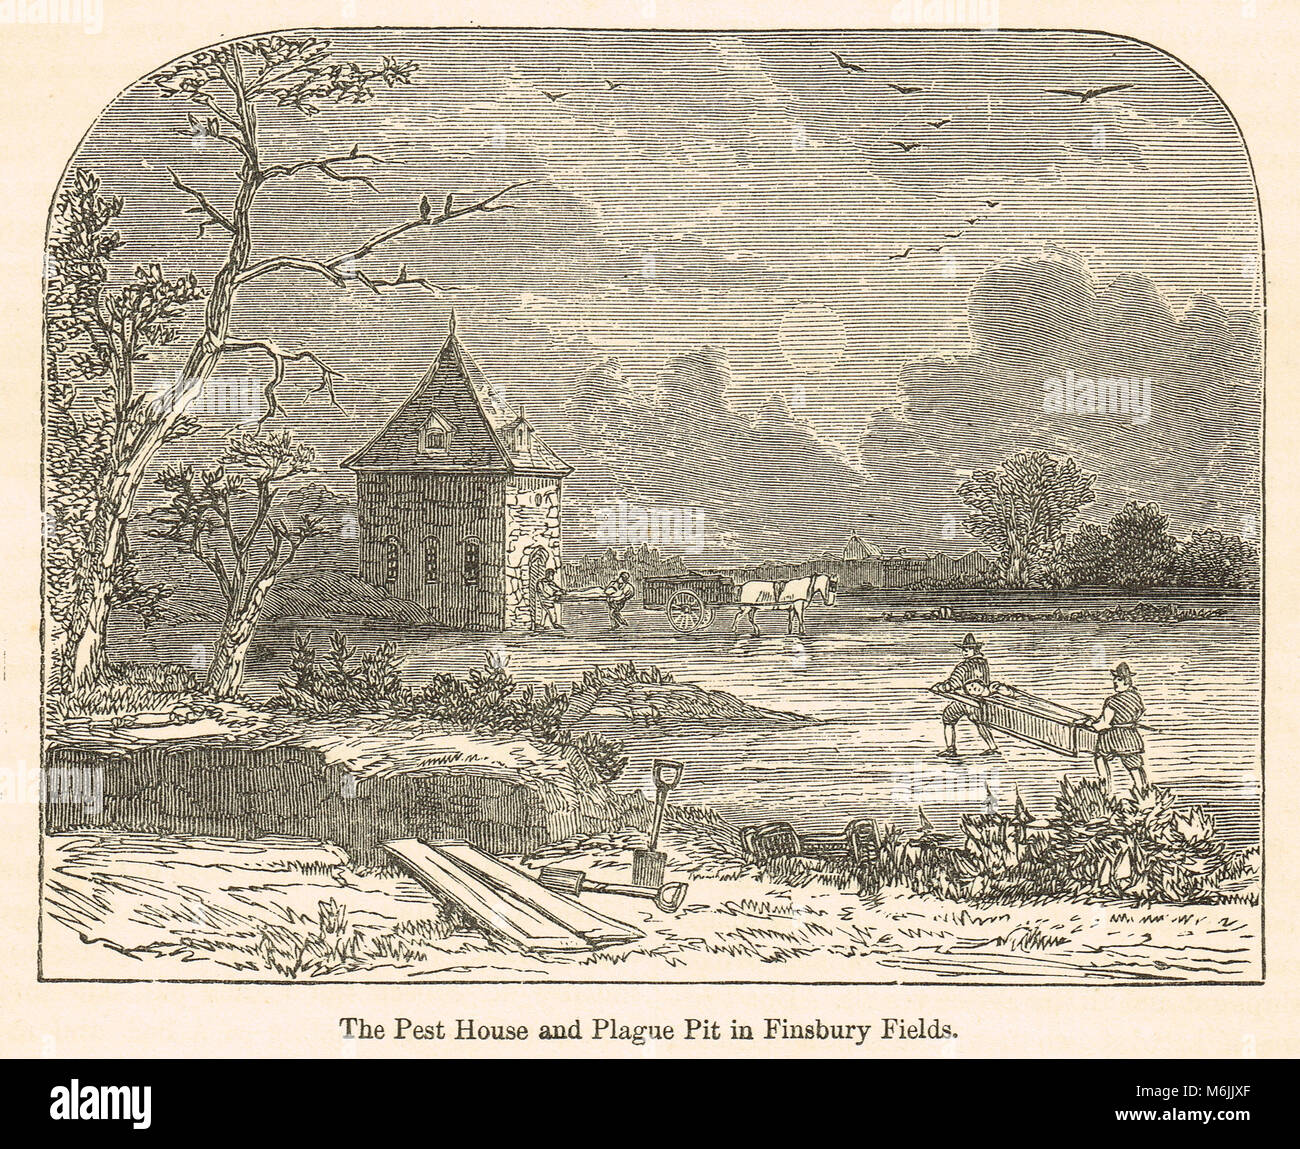 The Pest house and Plague pit, Finsbury Fields, London, England, The Great Plague of 1665 - Stock Image